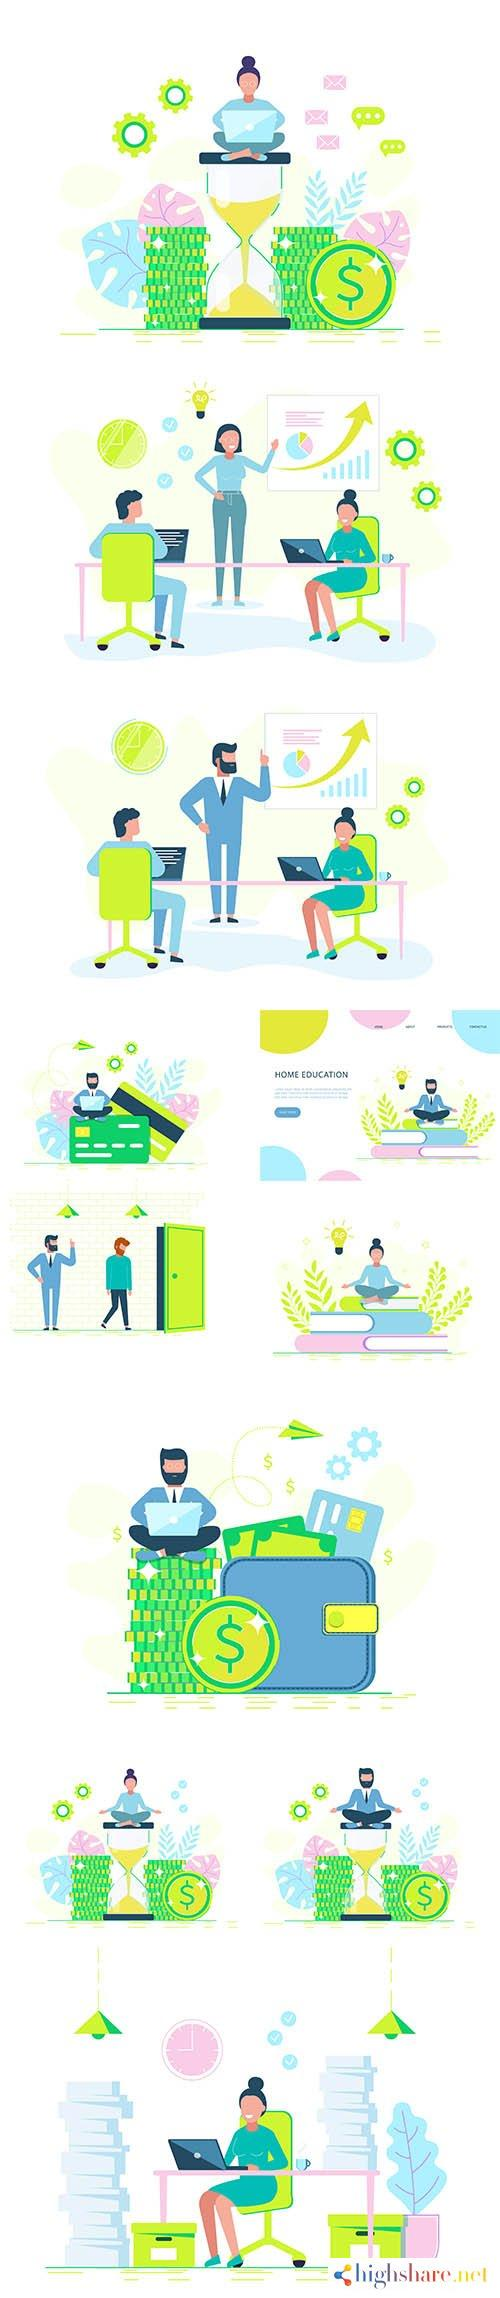 buisness concept illustration office work and study 5f400062590b0 - Buisness Concept Illustration Office Work and Study